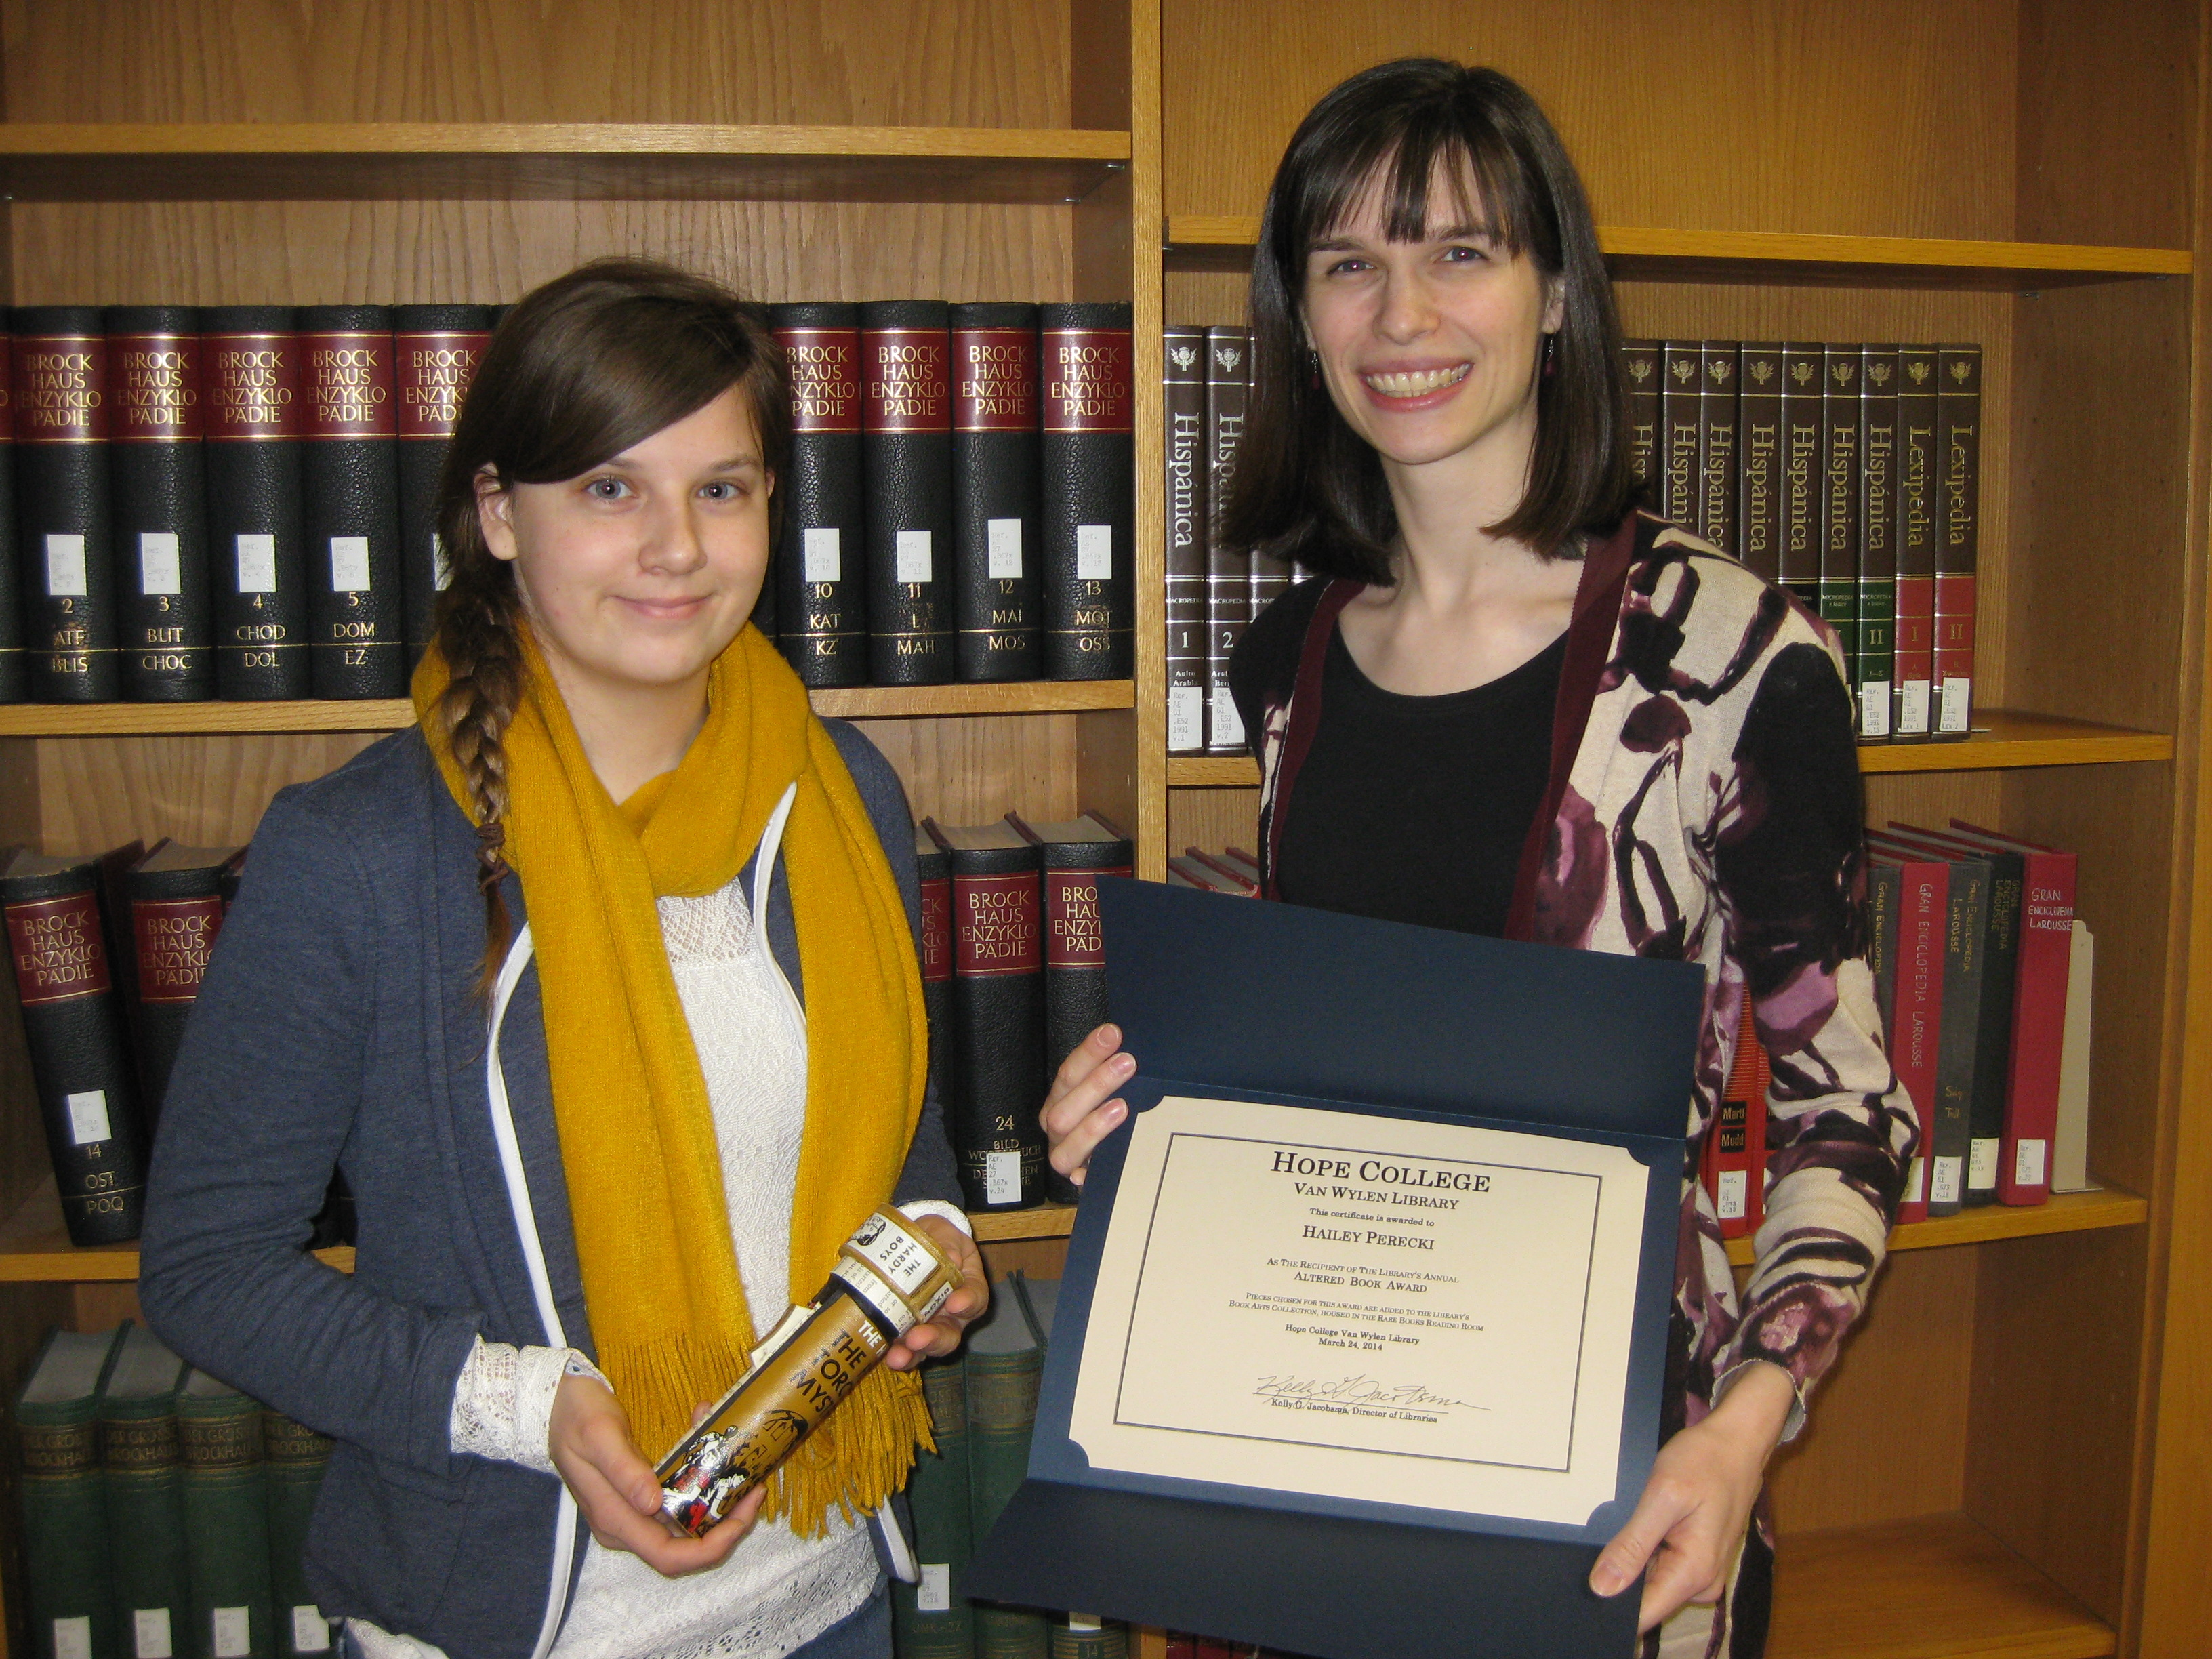 Hailey Perecki, winner of this year's Altered Book Art Award, with librarian Jessica Hronchek.